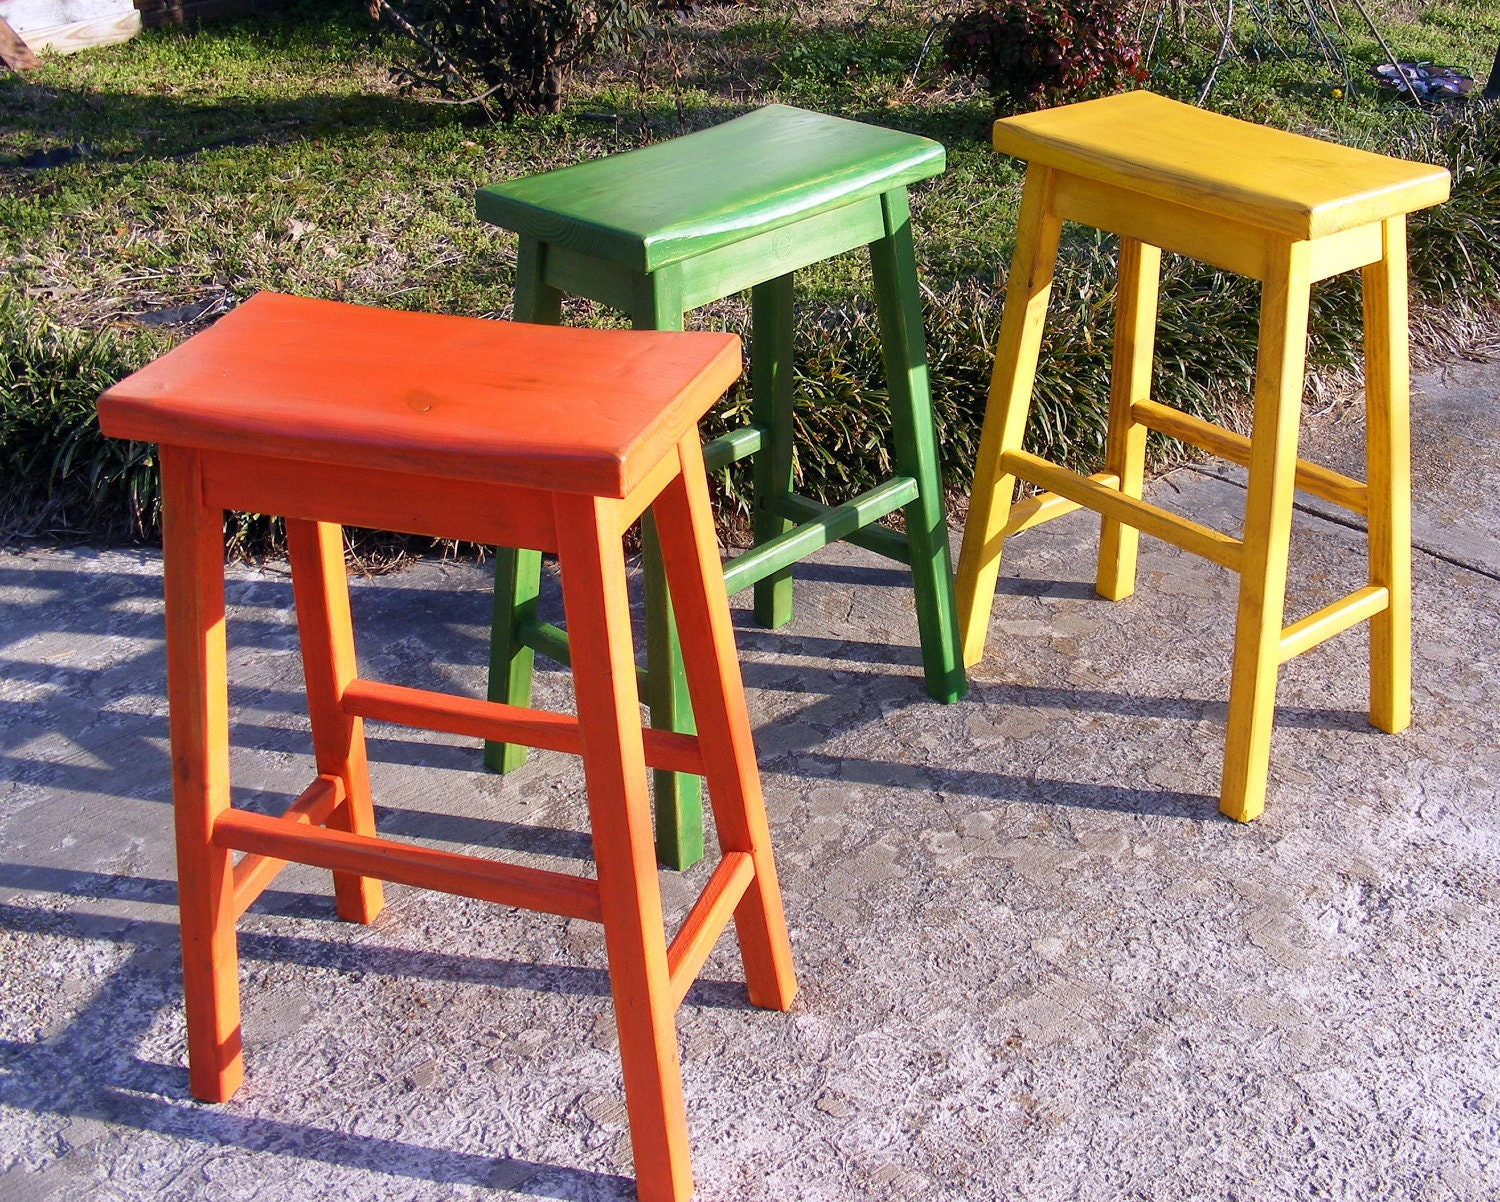 Terrific Saddle Stools Set Of 3 Handcrafted Solid Wood Distressed Bright Colors Orange Green Yellow Pdpeps Interior Chair Design Pdpepsorg